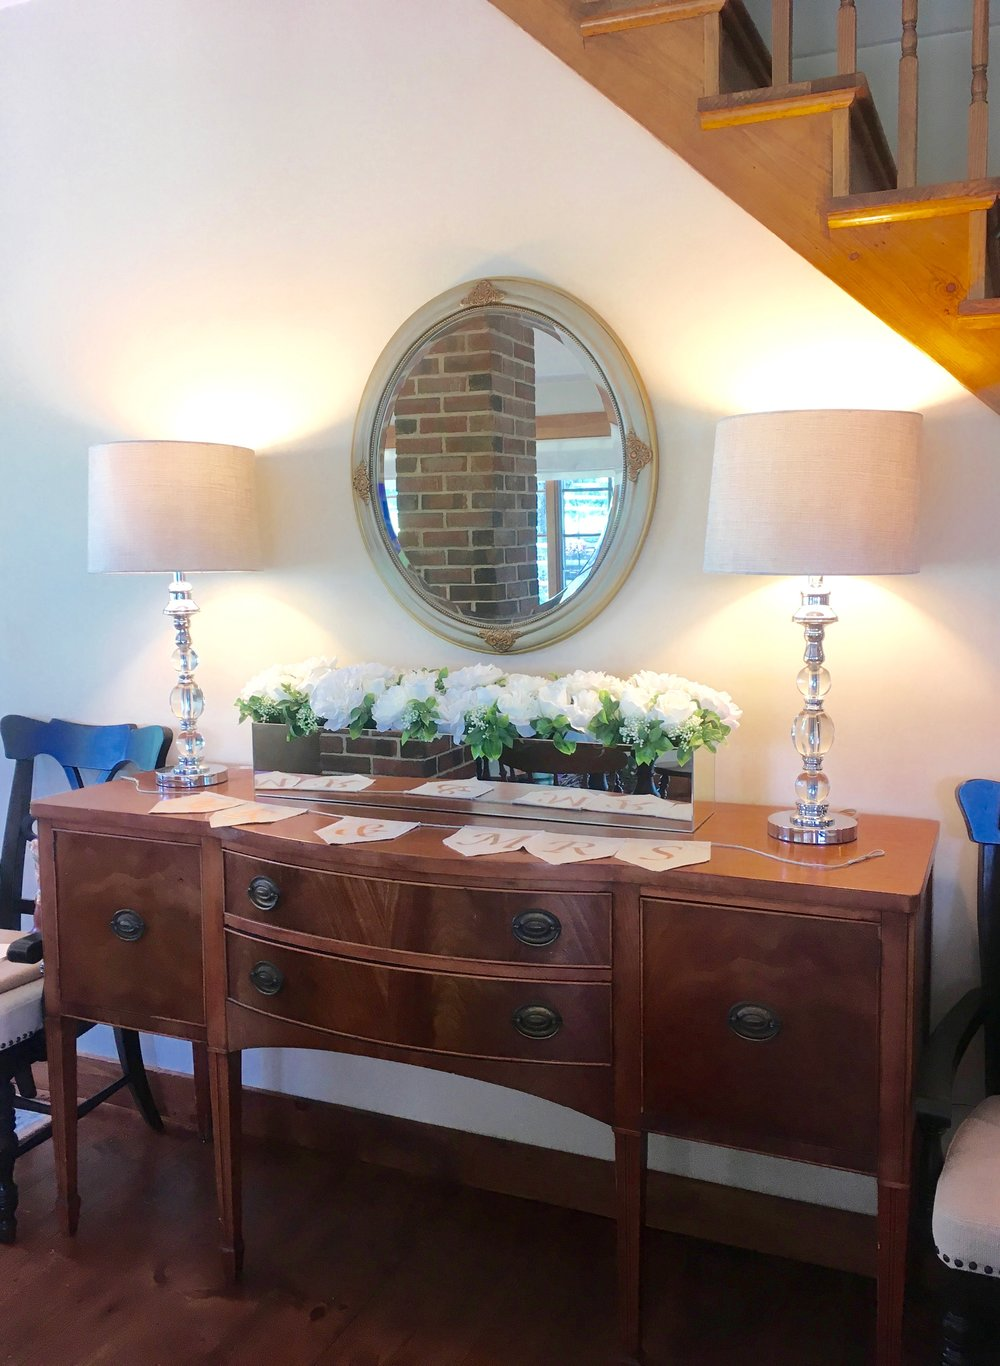 After: We swapped out a heavy (physically and visually) china cabinet with this sideboard in this clients kitchen. Not only is it pretty, but it's a usable surface for the family wedding they were hosting!